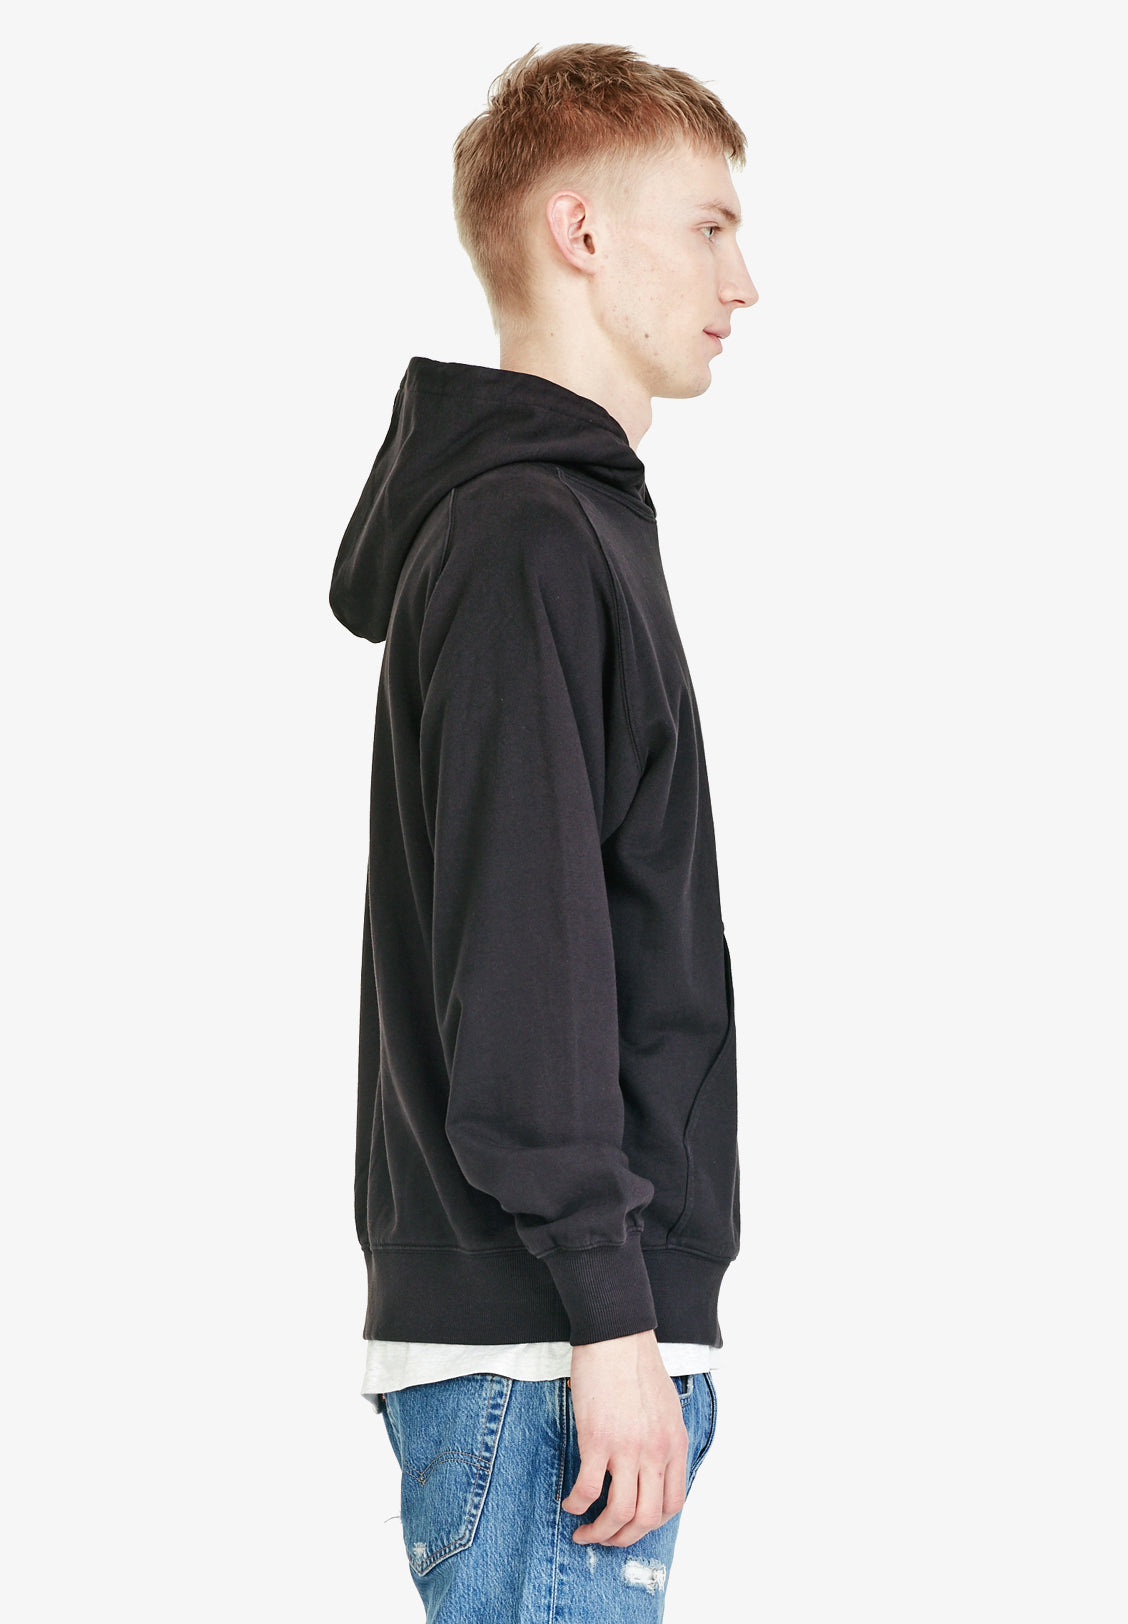 MEN'S FLEECE HOOD, VINTAGE BLACK